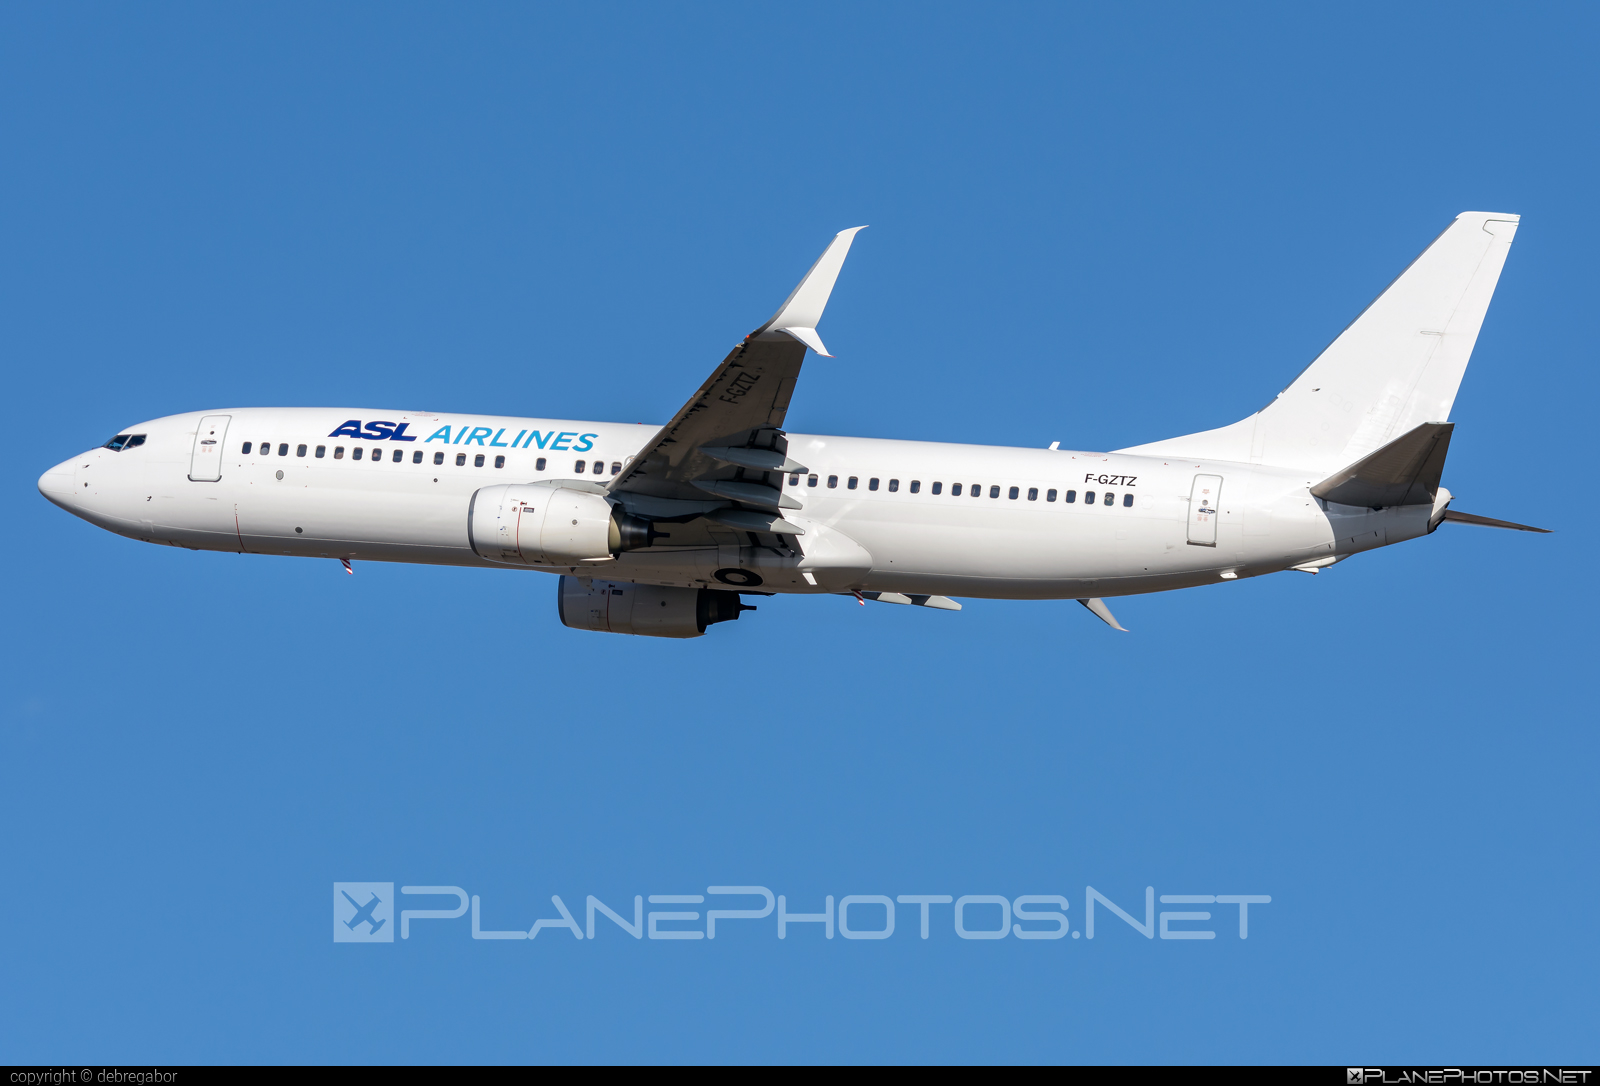 Boeing 737-800 - F-GZTZ operated by ASL Airlines France #aslairlines #aslairlinesfrance #b737 #b737nextgen #b737ng #boeing #boeing737